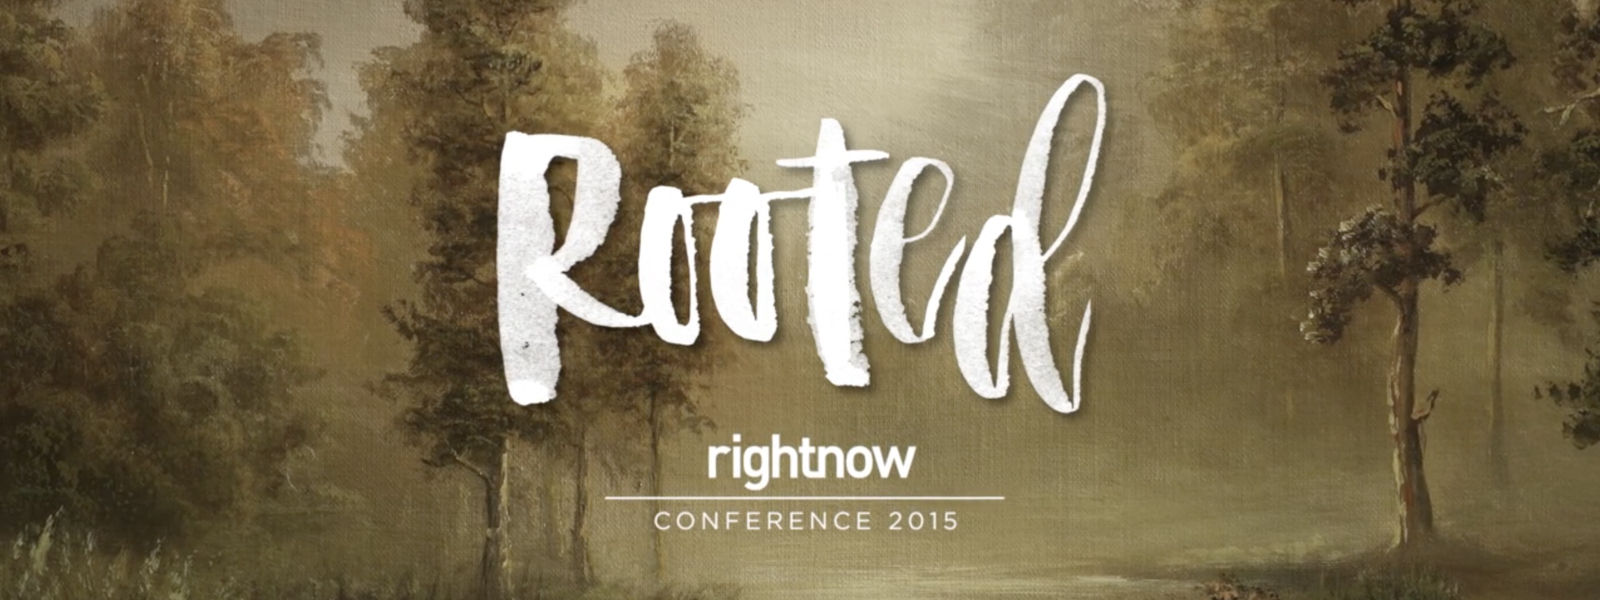 RightNow Conference 2015